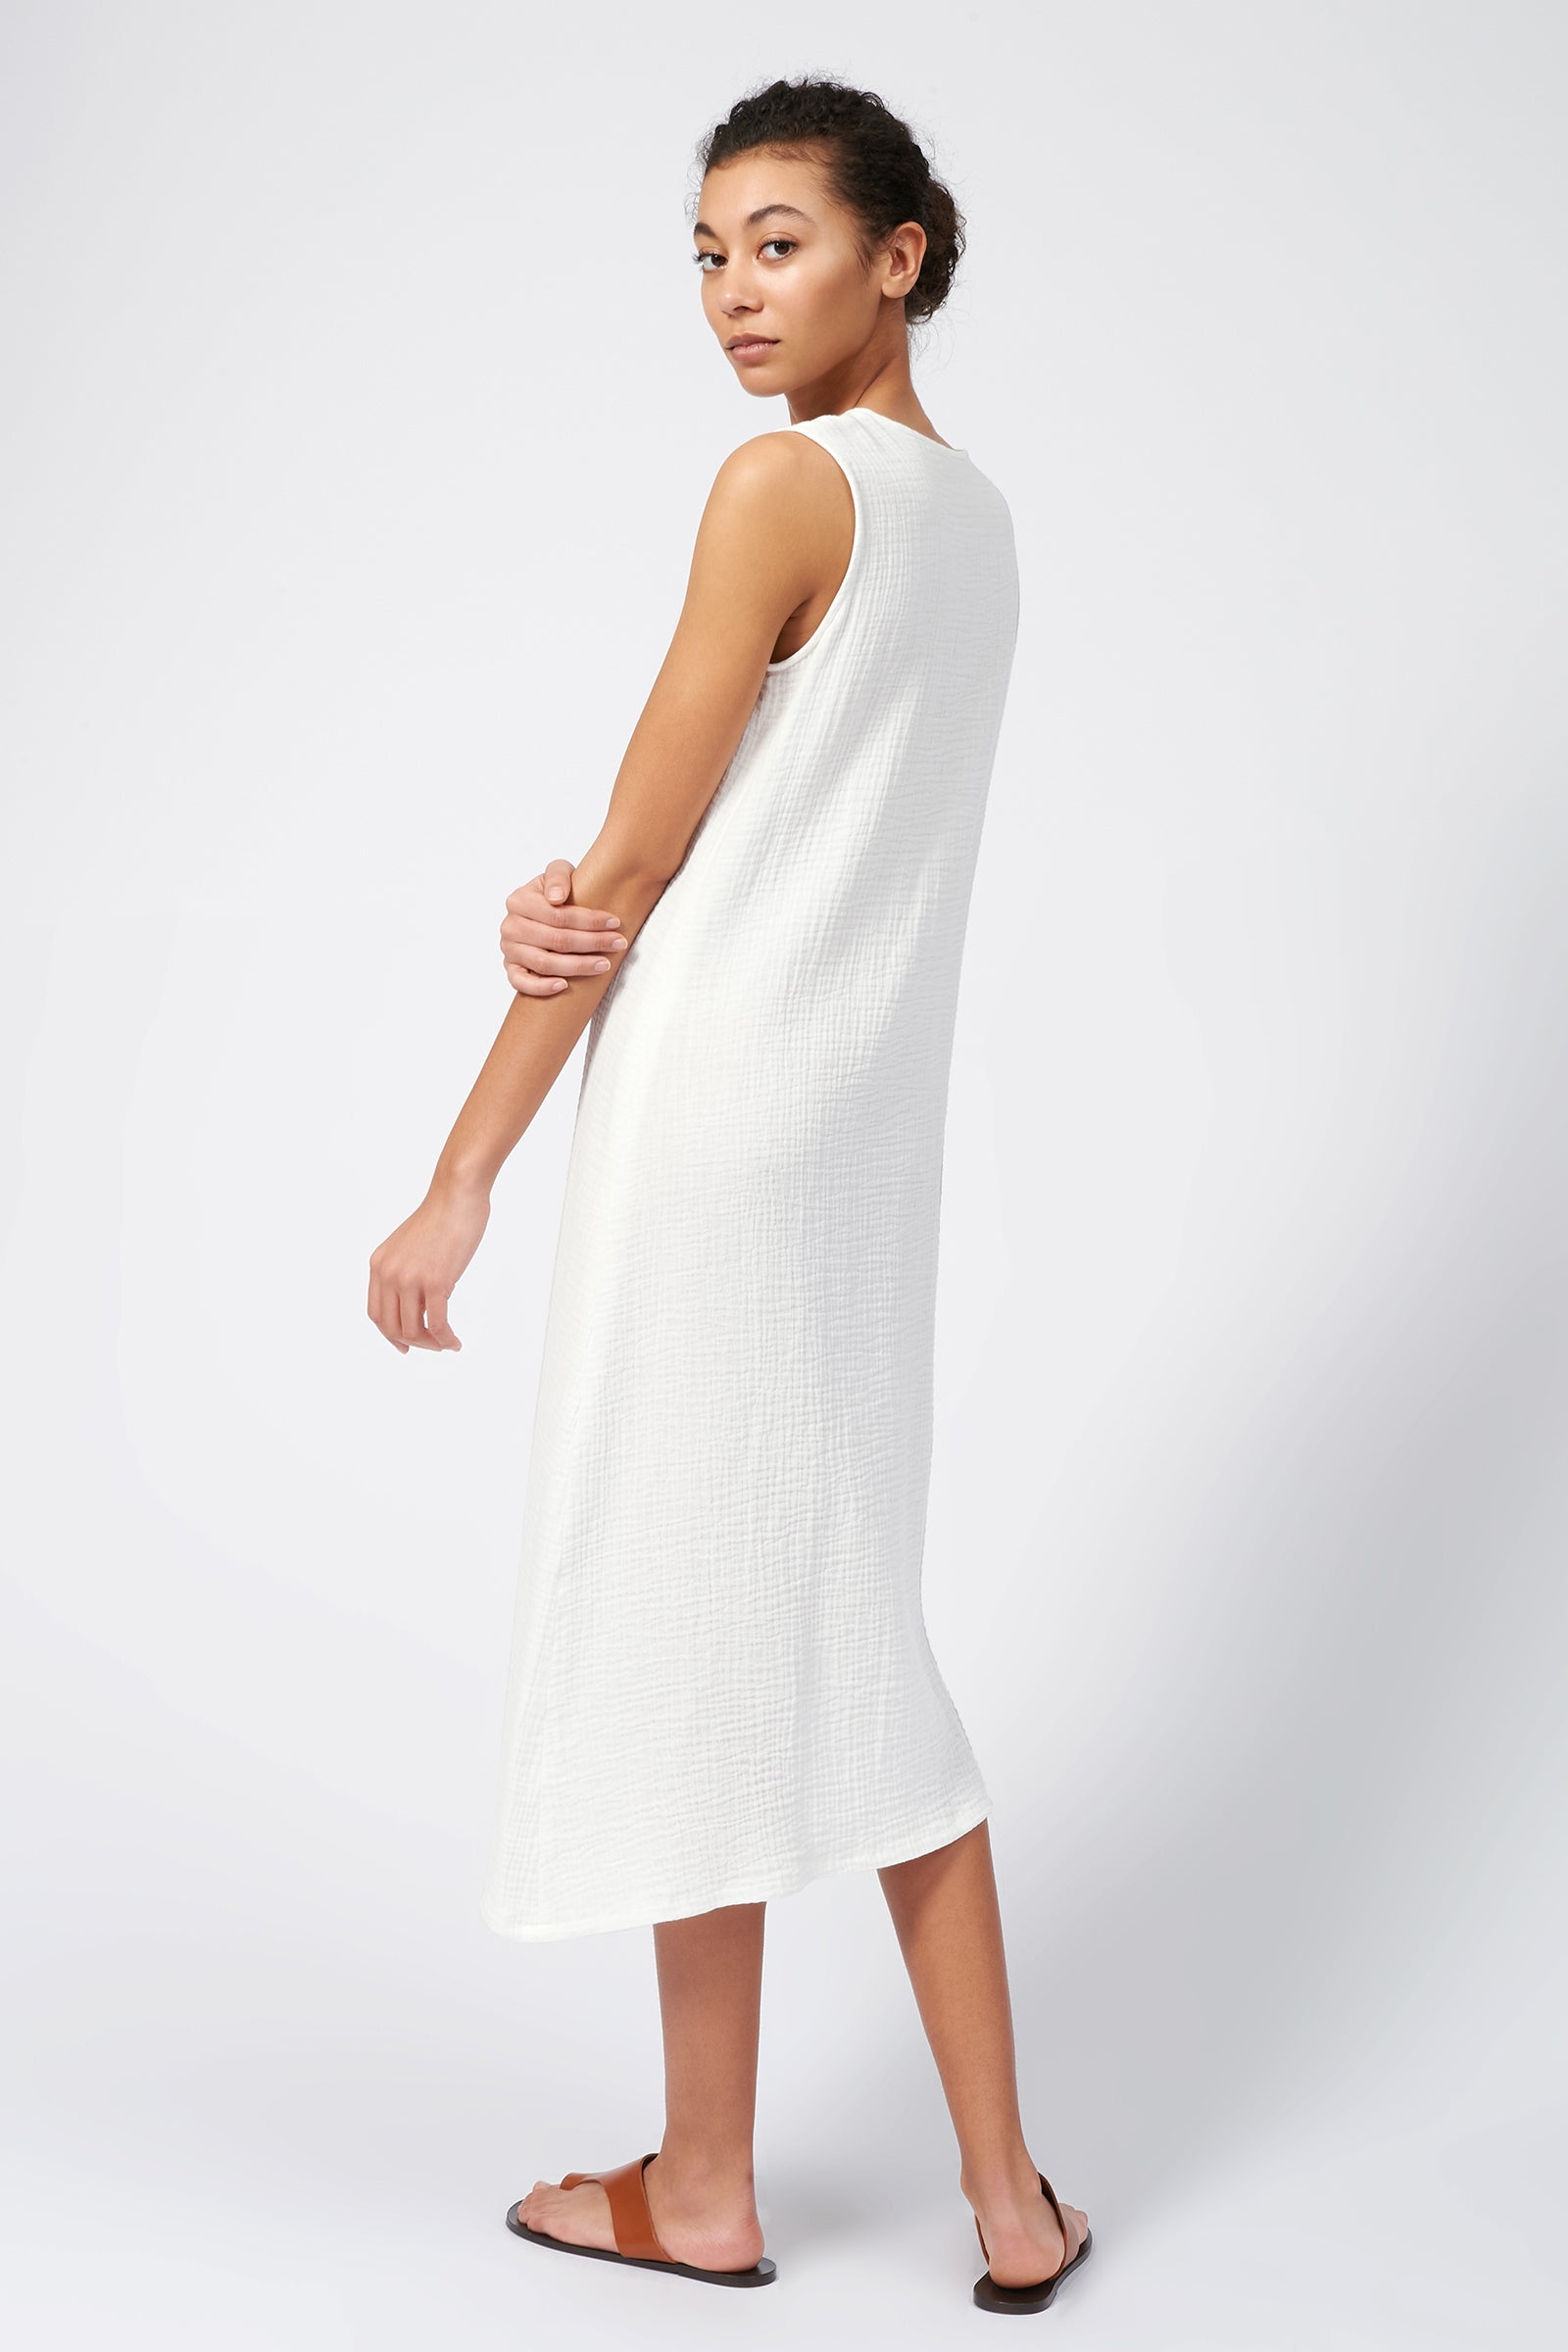 Kal Rieman Cinched Front Dress in Natural on Model Front View